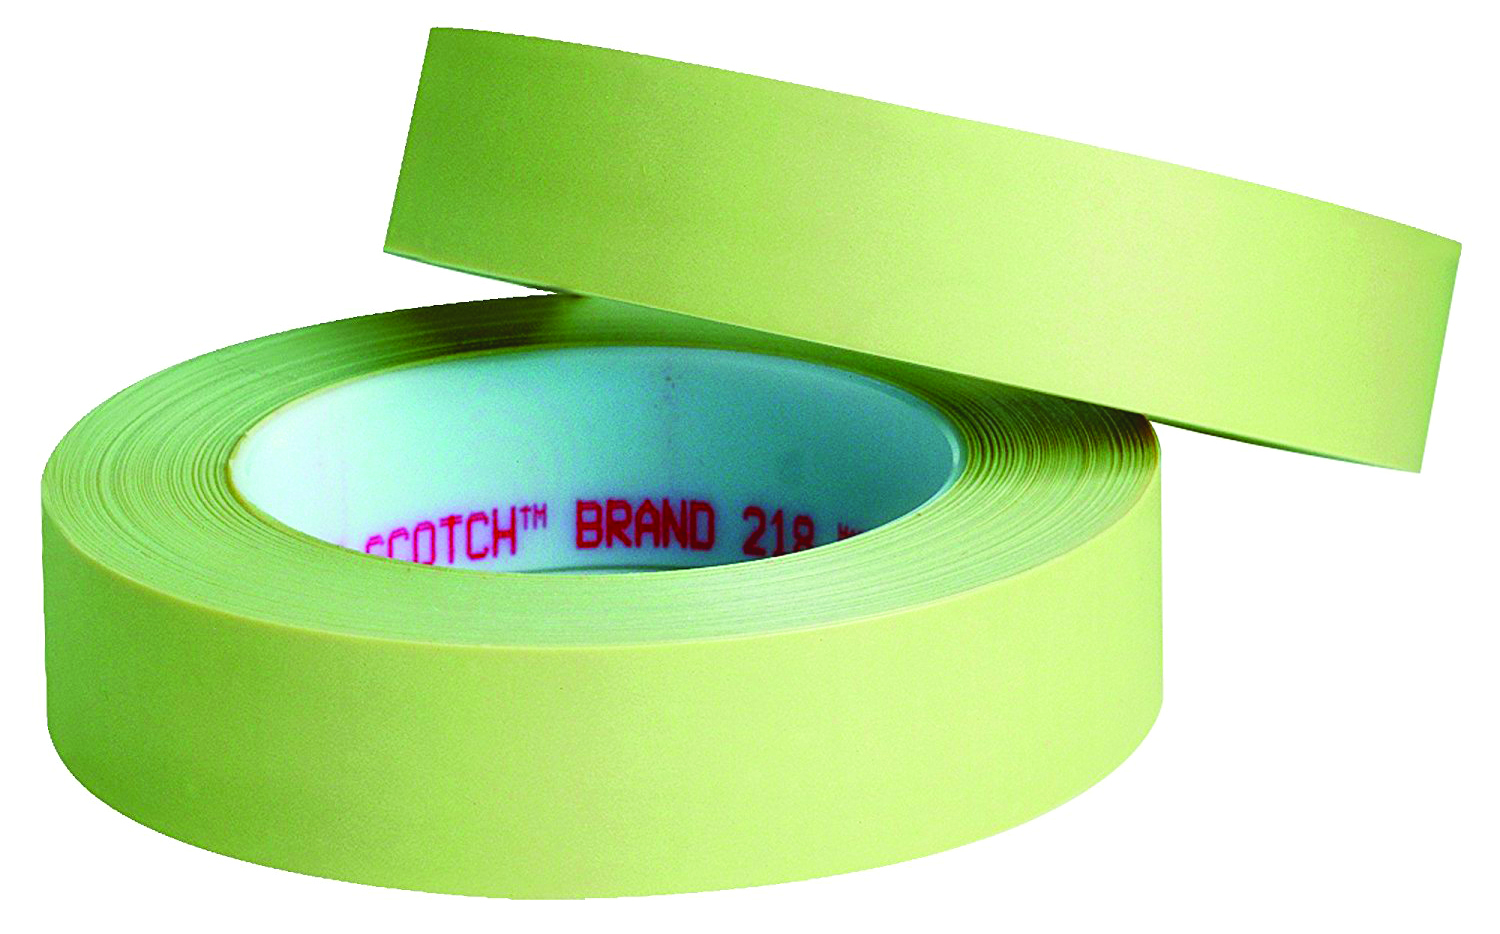 70006028693 - Scotch® Green Fine Line Tape 218-2